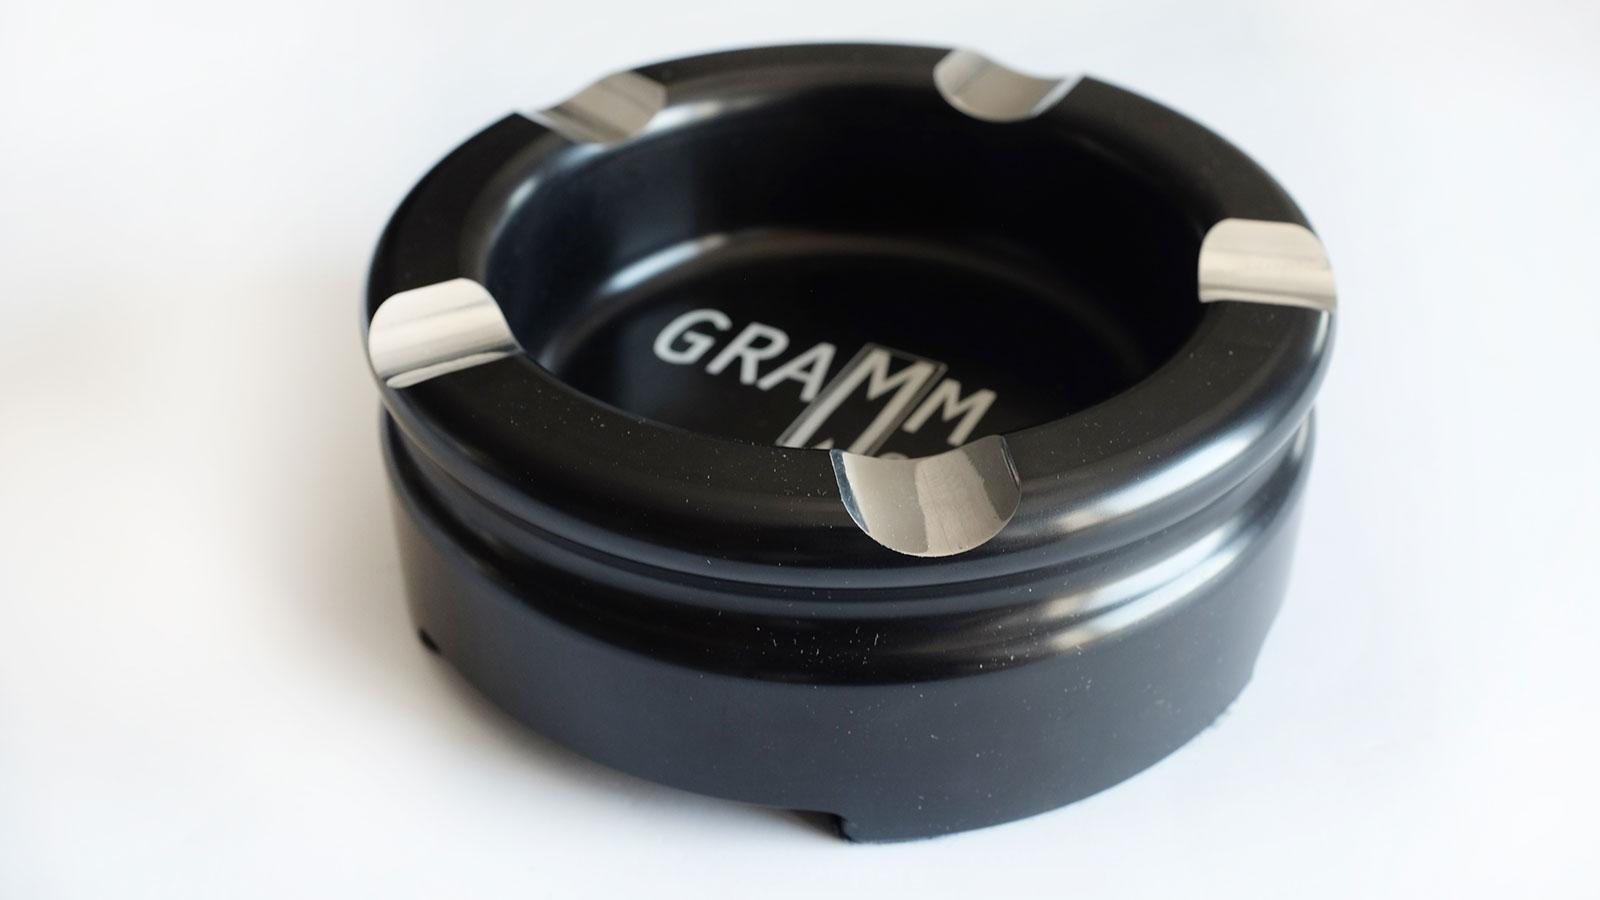 Gramm Works Cinque Forte Ashtray